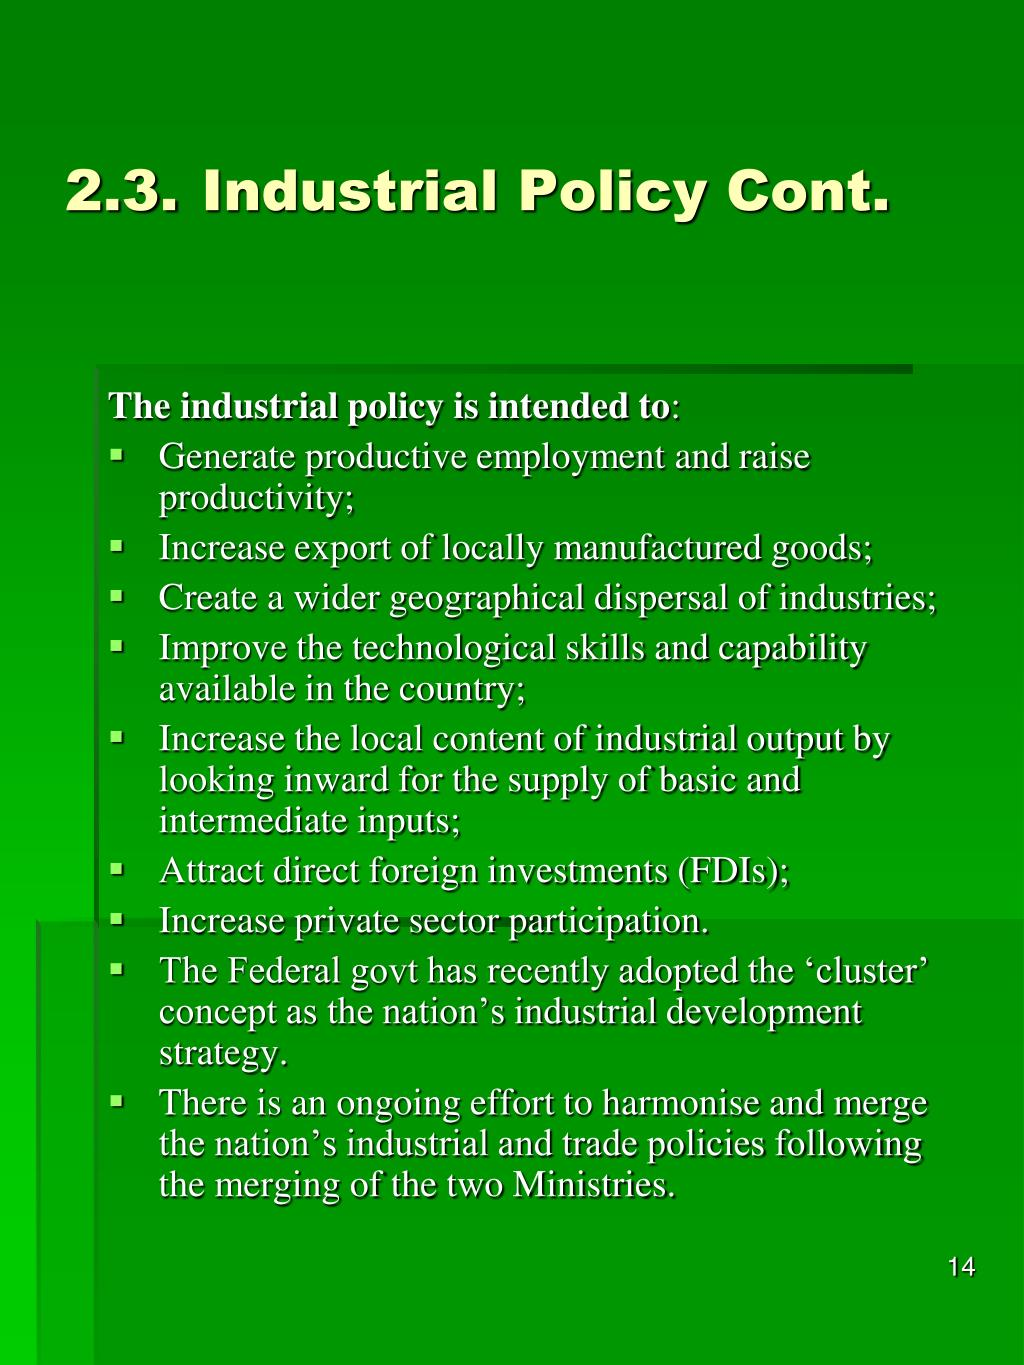 2.3.Industrial Policy Cont.